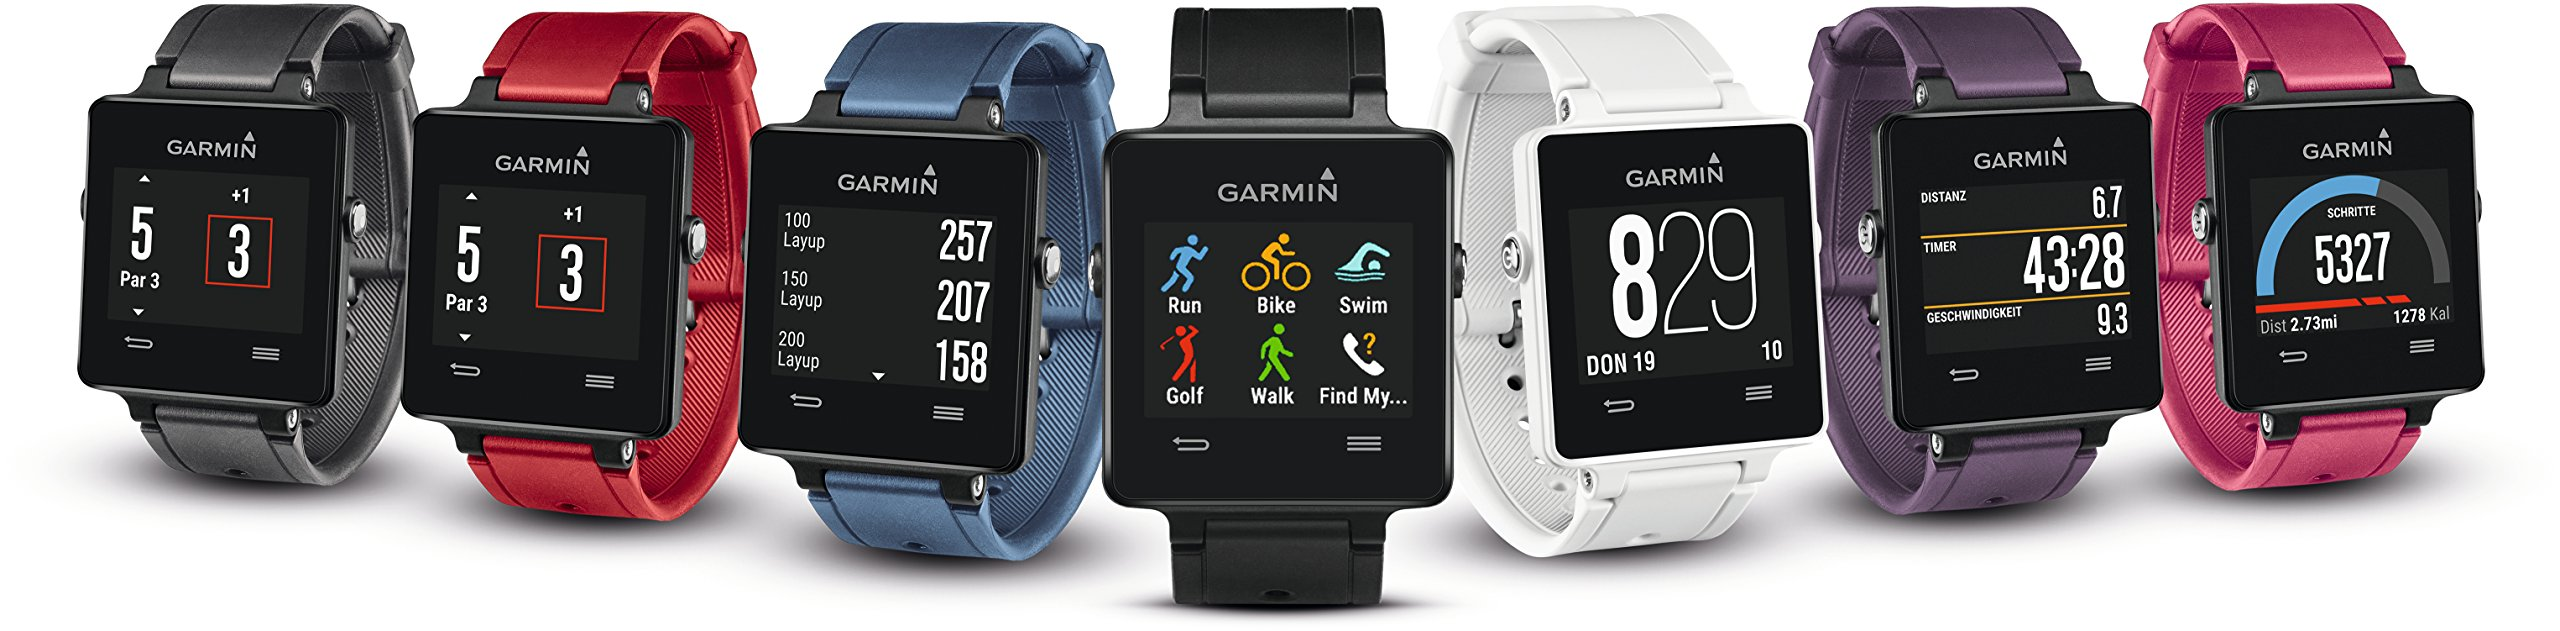 Garmin vívoactive Black bundle (Includes Heart Rate Monitor) by Garmin